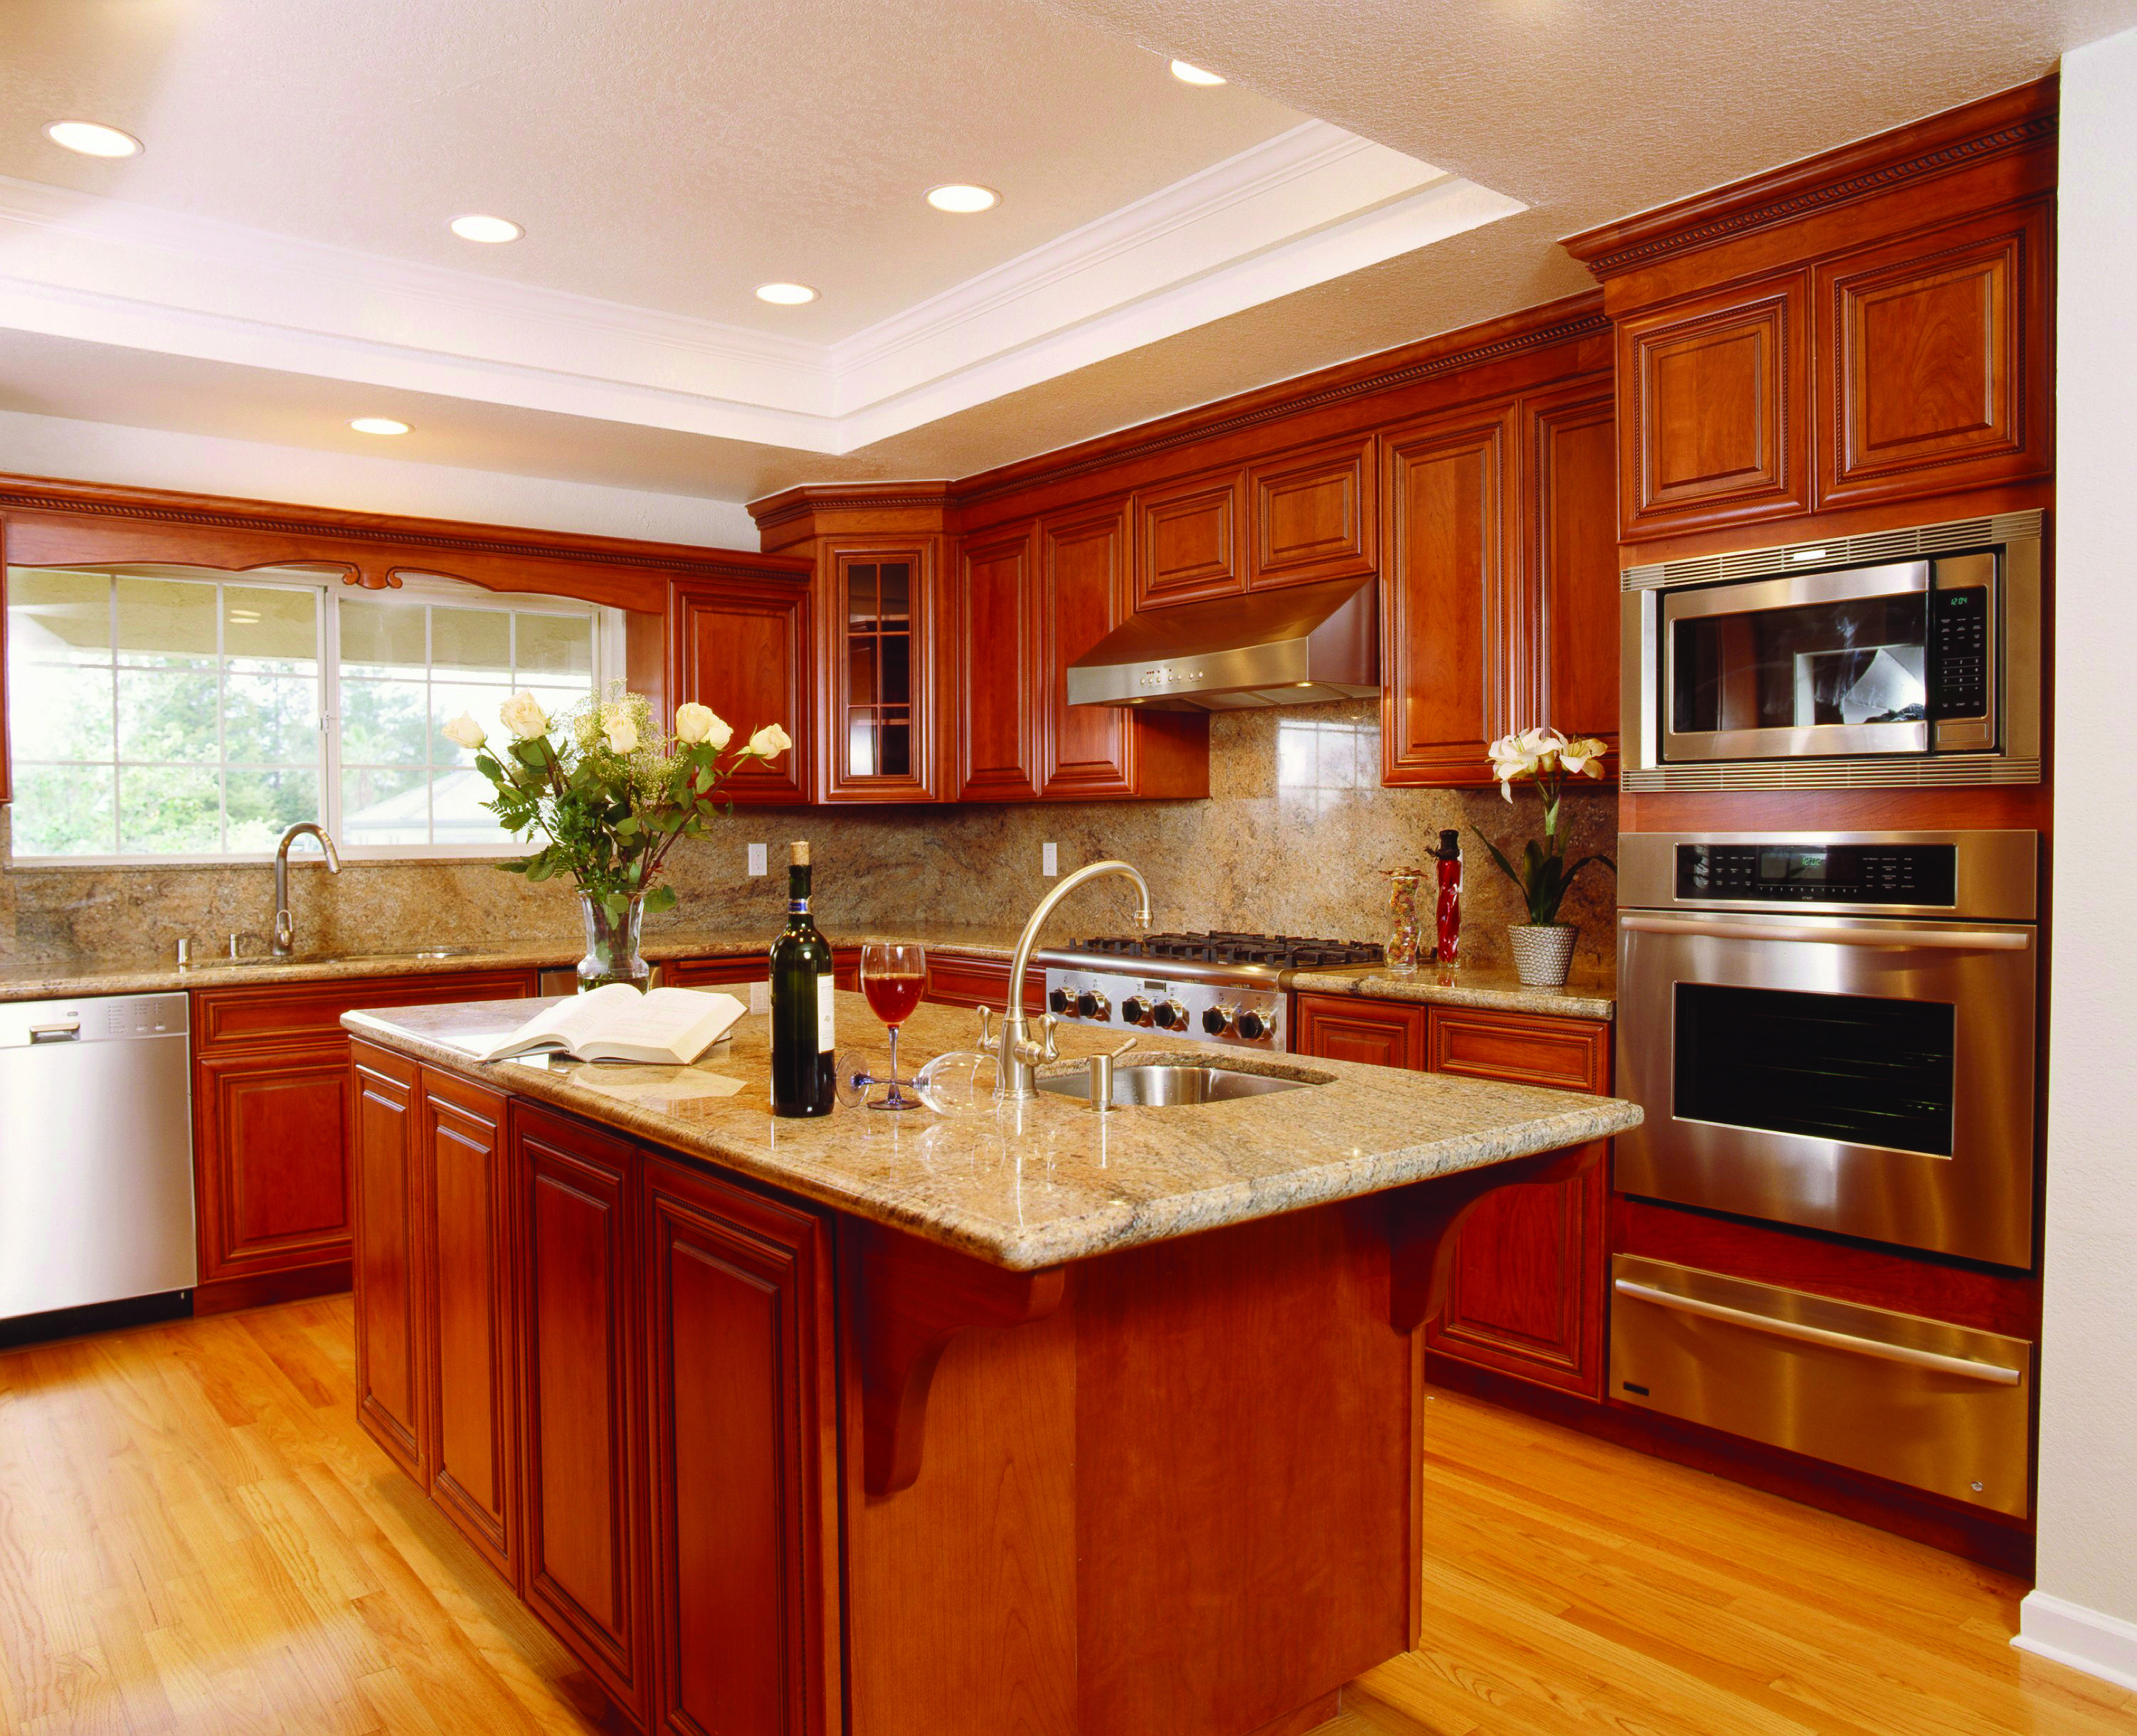 Really Nice Woodwork And Cabinets Kitchen Rejuvenation 2 Beautiful Kitchen Cabinets Beautiful Kitchens Kitchen Design